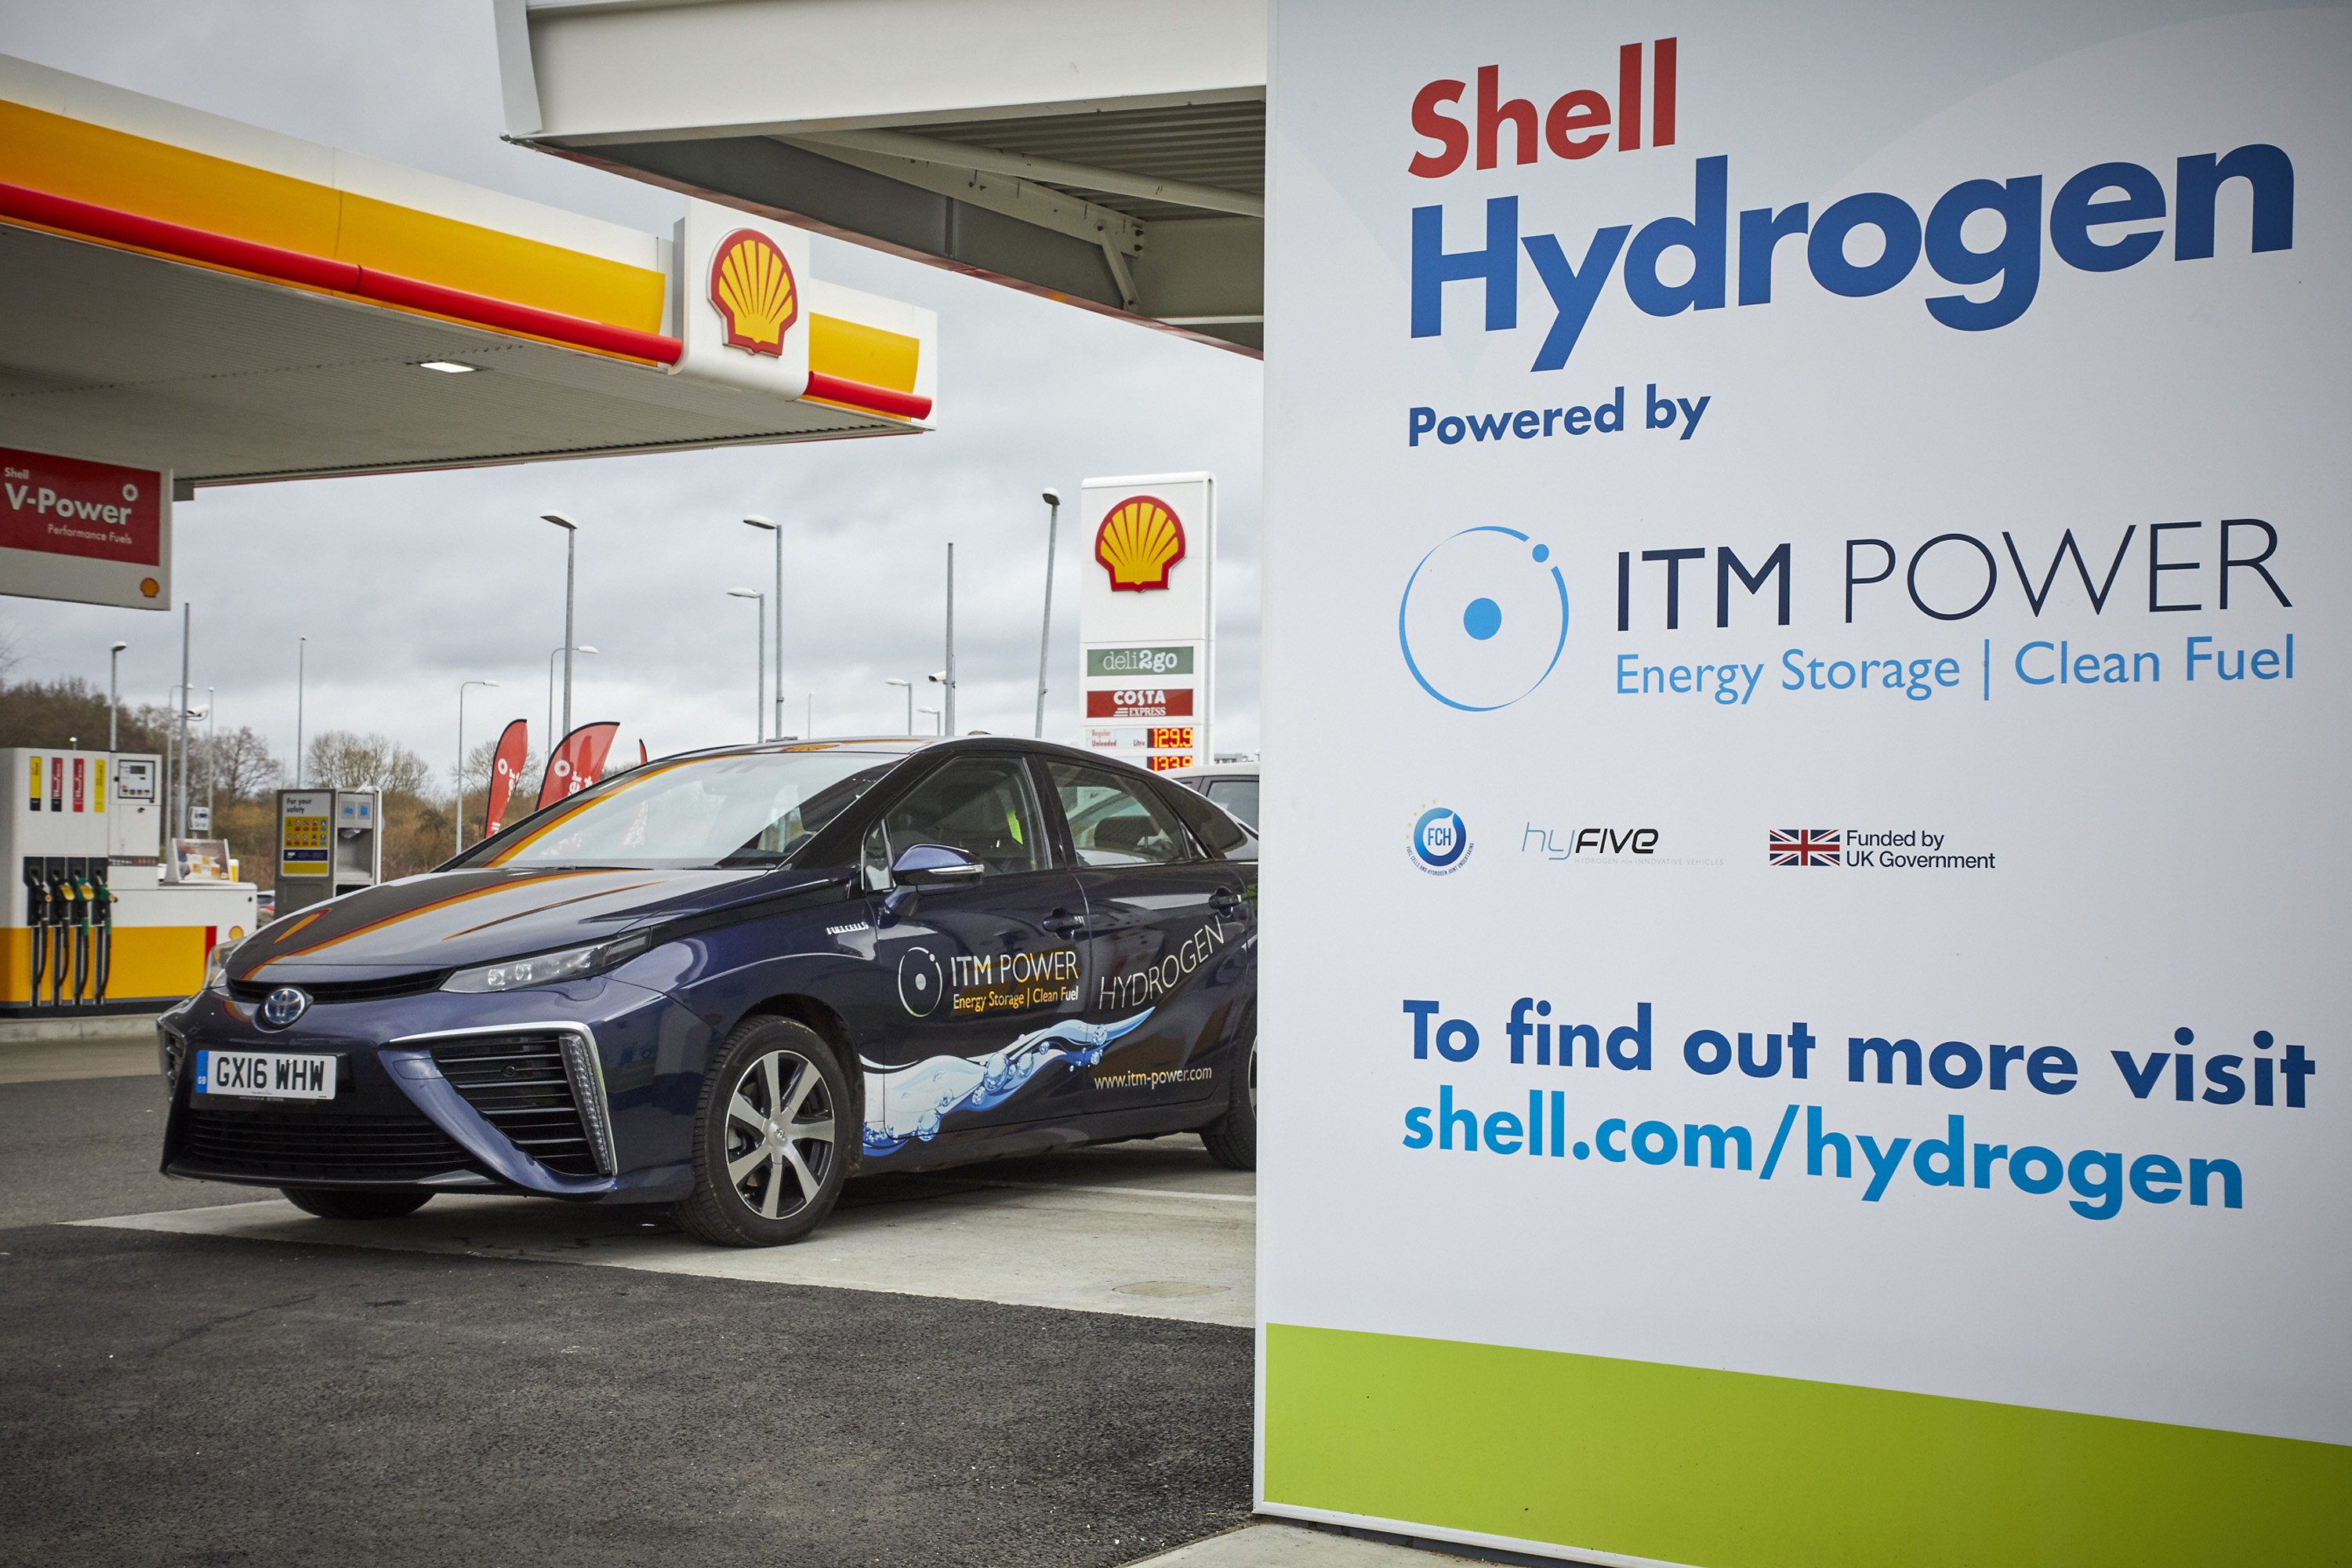 ITM Power Hydrogen Station Shell Cobham